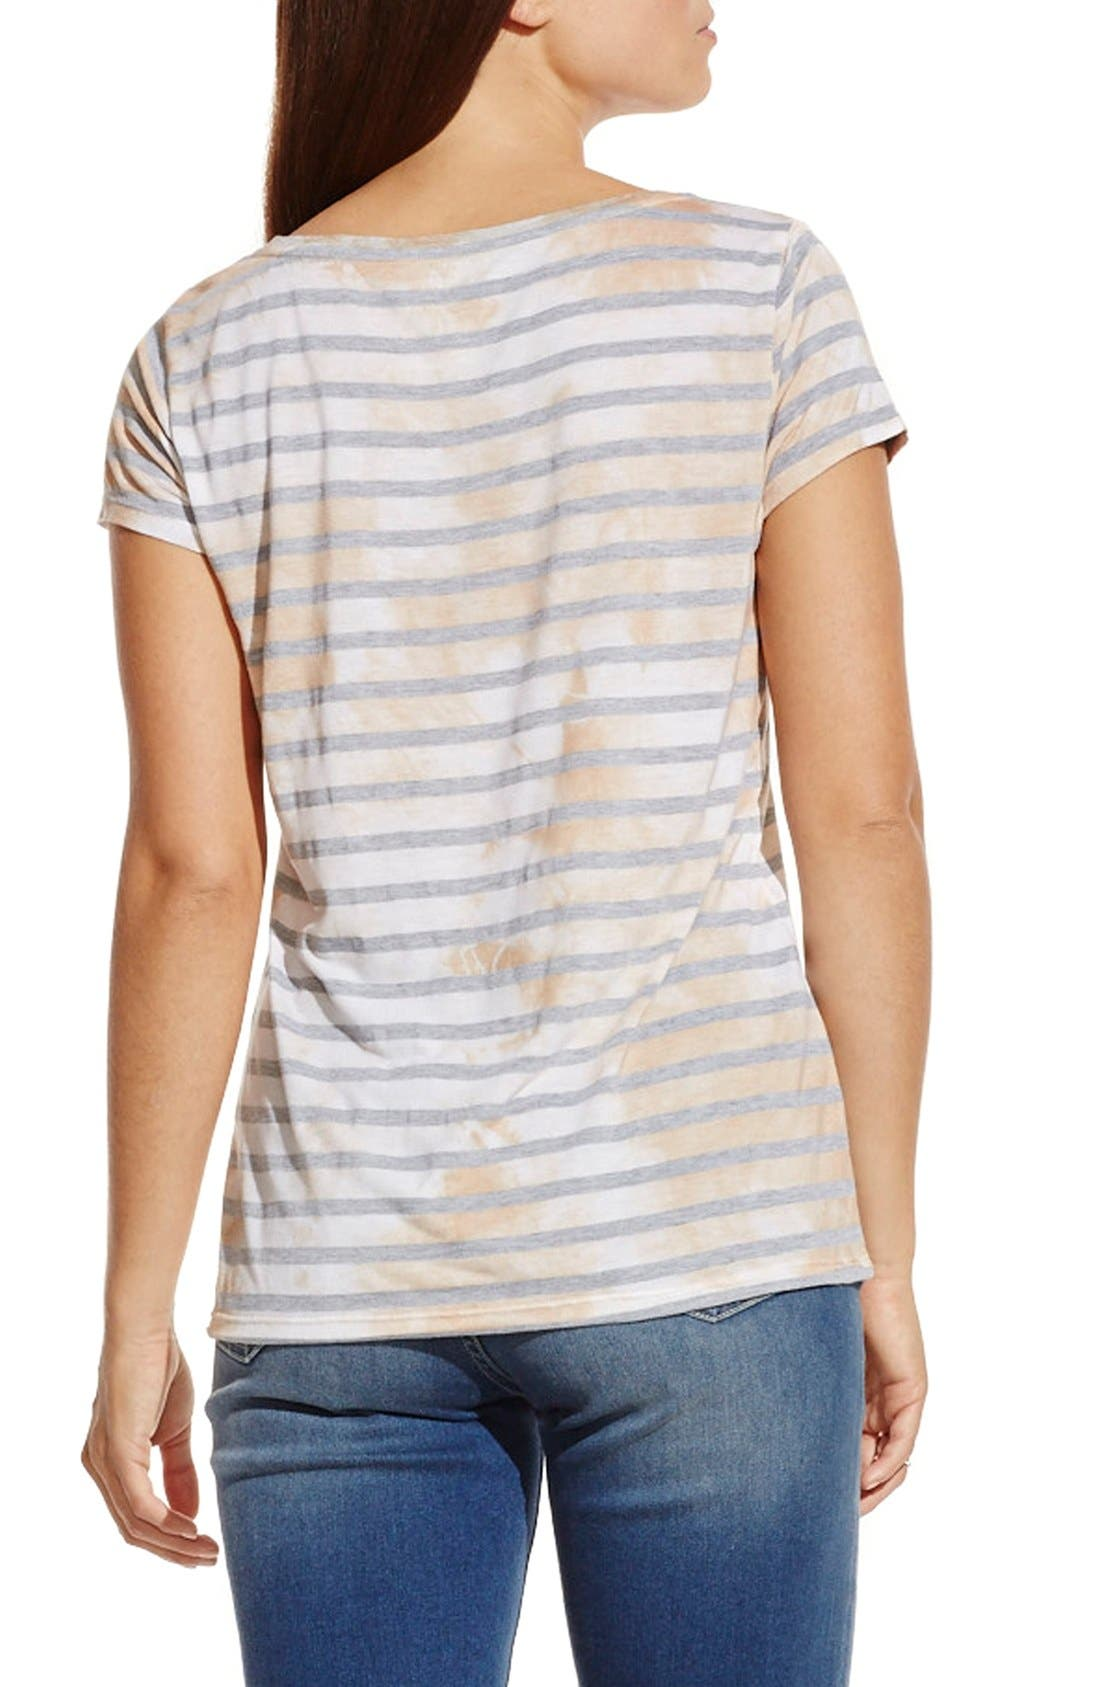 Alternate Image 2  - Two by Vince Camuto 'Painterly Blotches' Stripe Tee